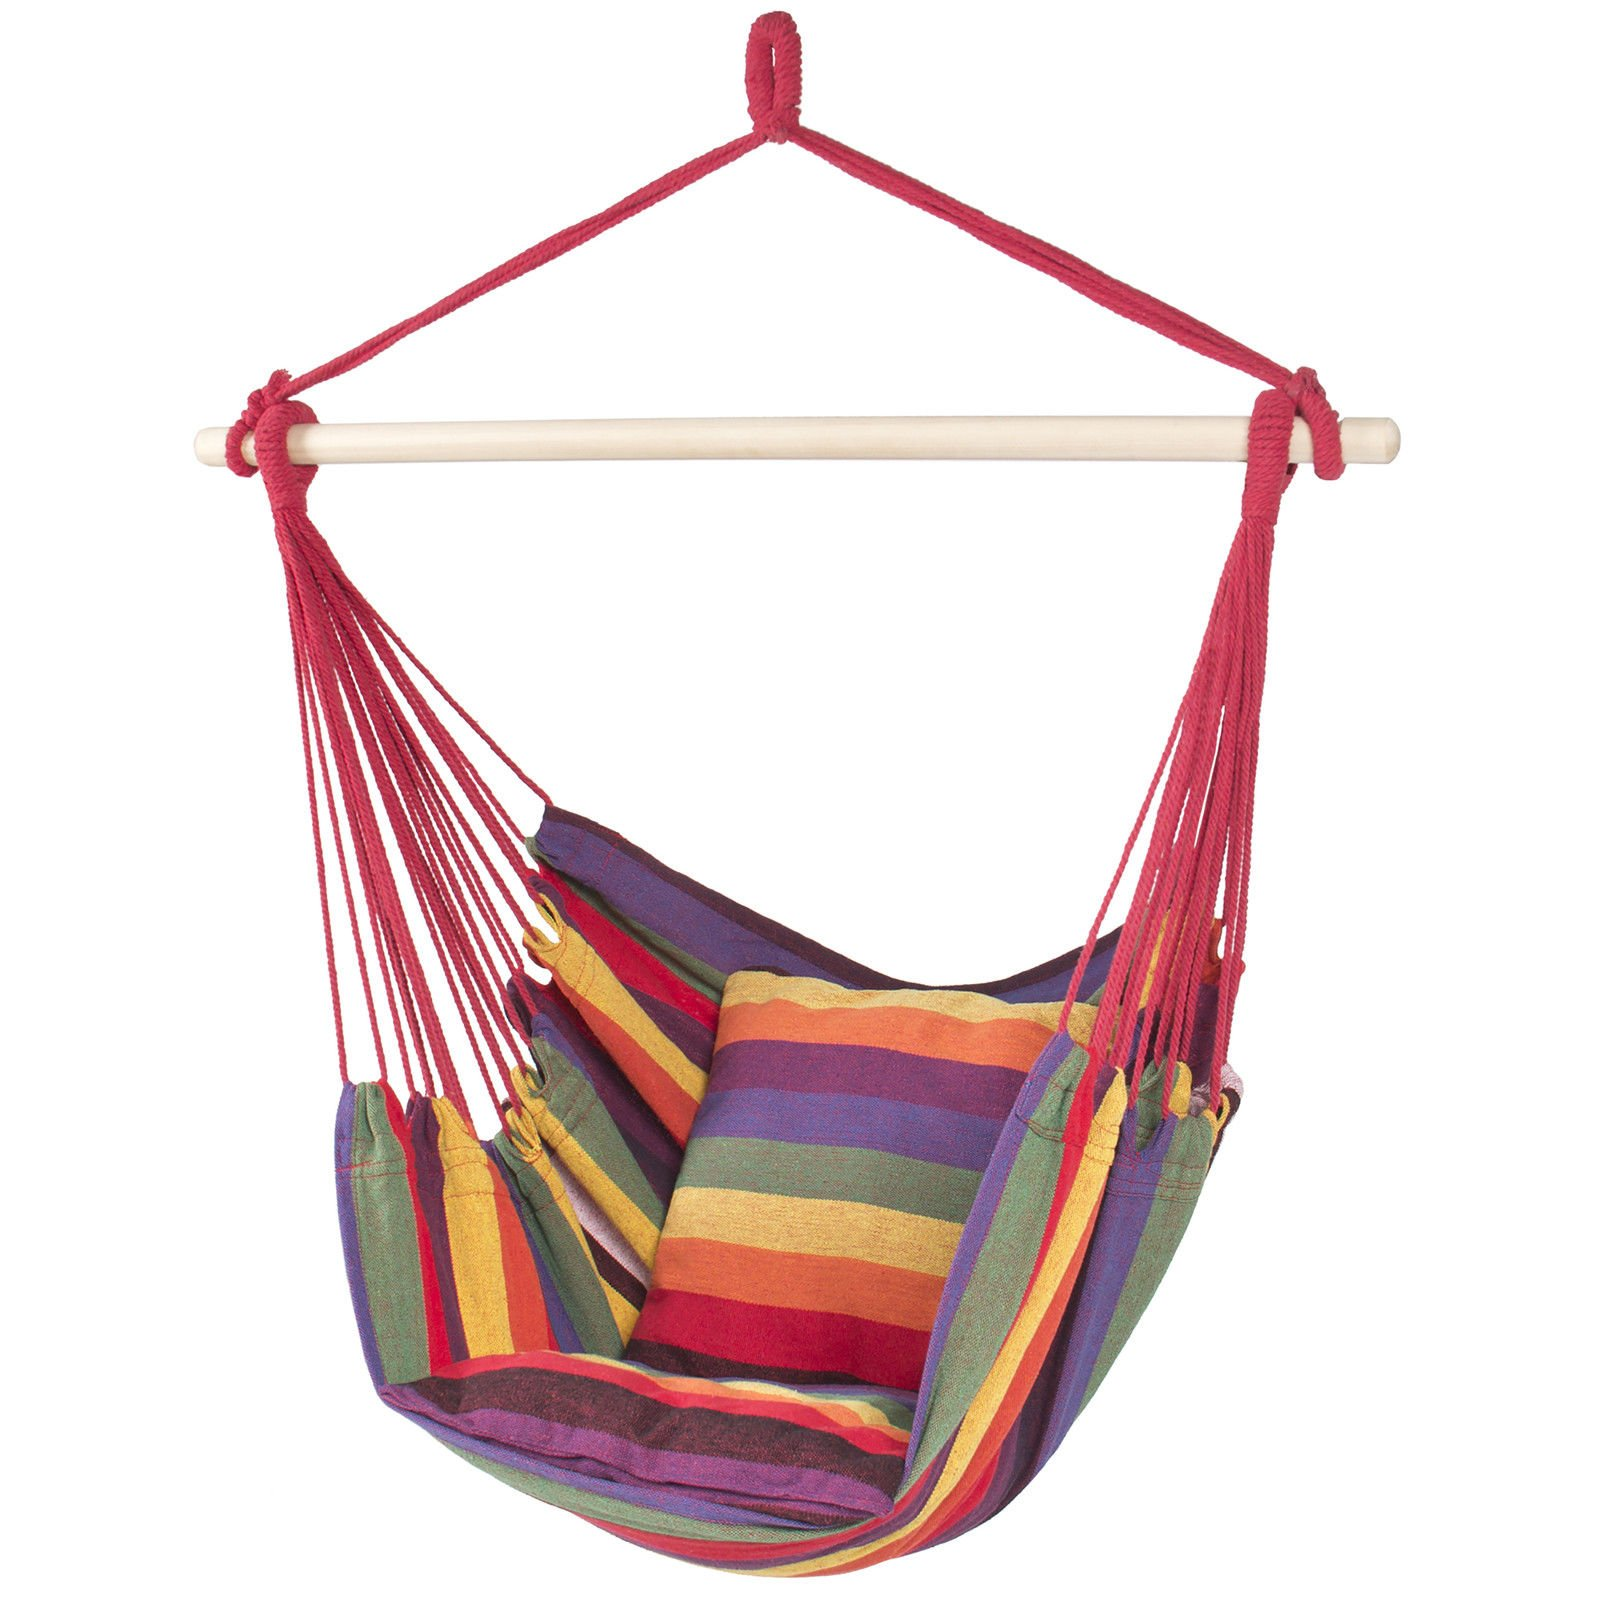 LTL Shop Porch Swing Seat Patio Hammock Hanging Rope Chair Portable Red Stripe